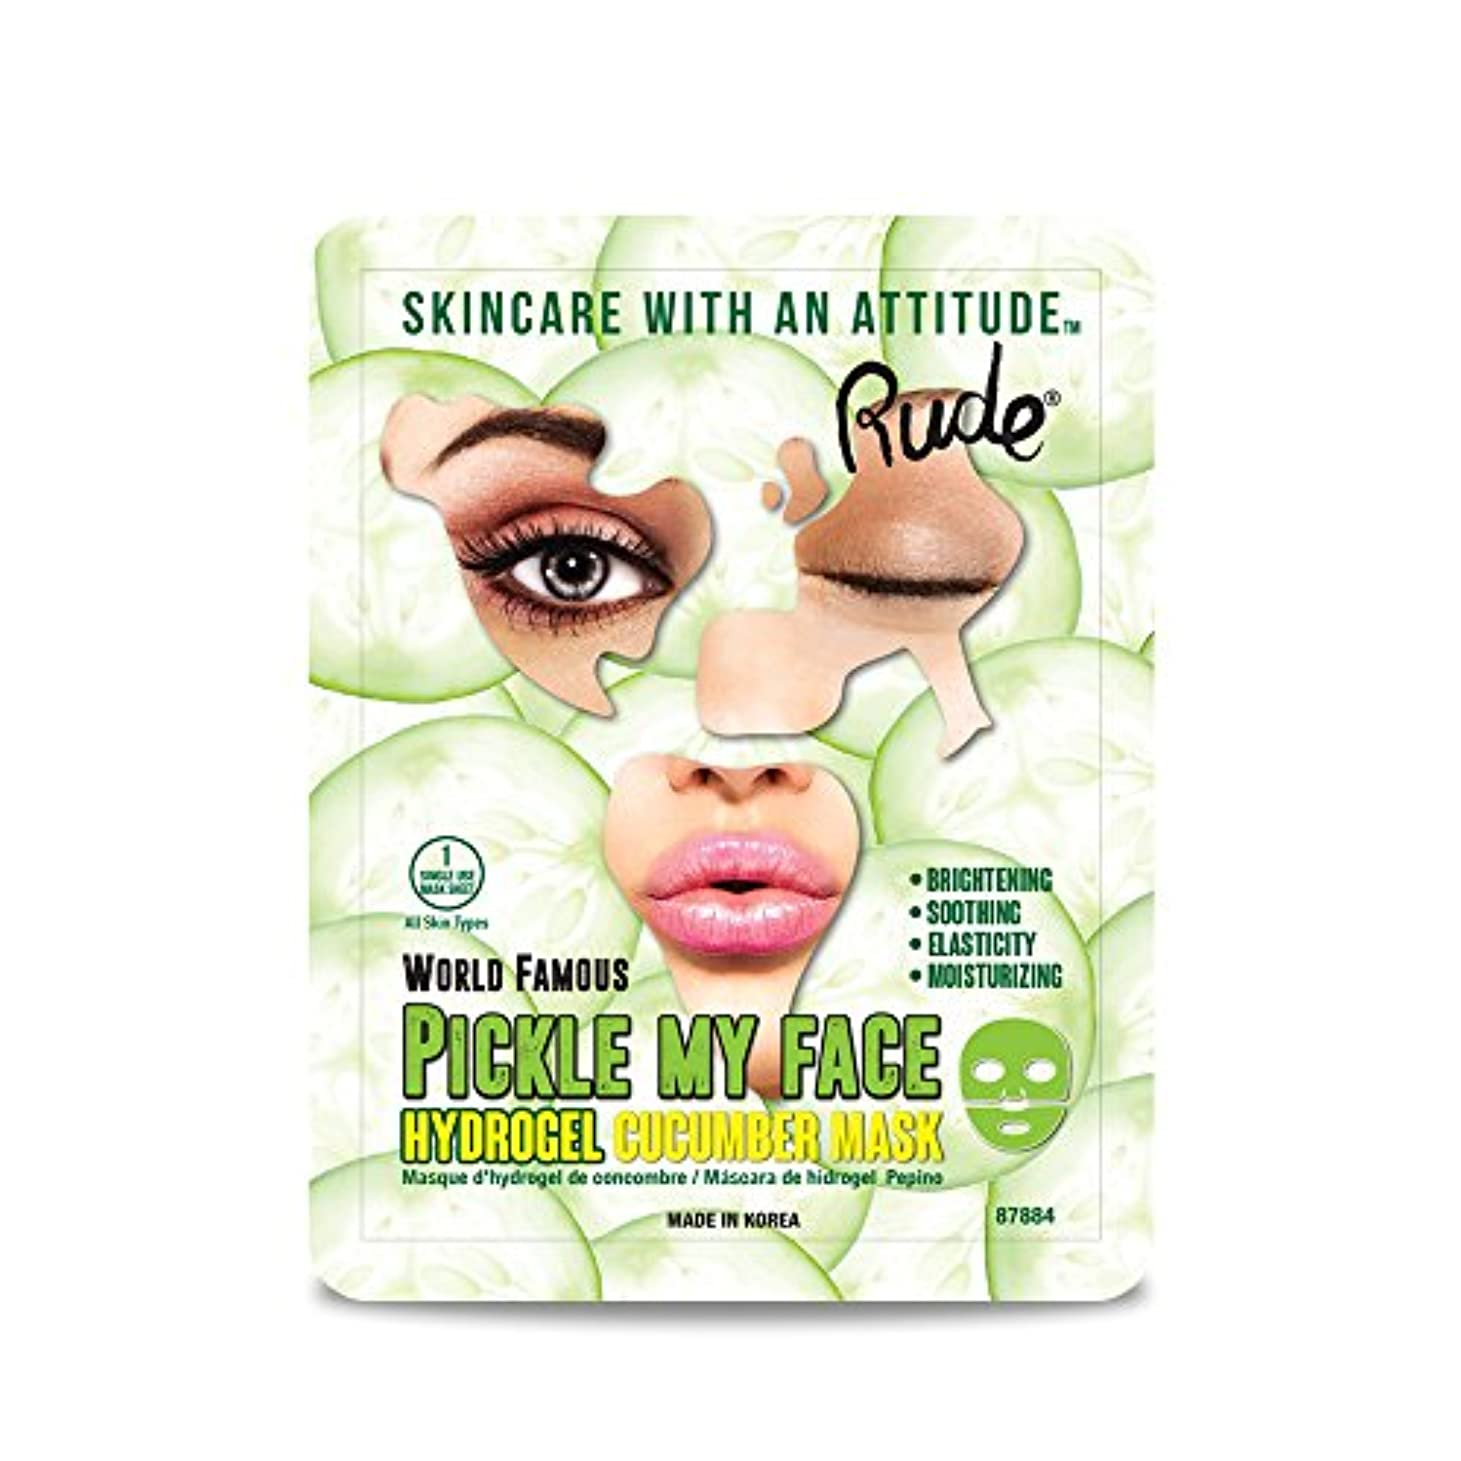 委任親愛な何でも(3 Pack) RUDE Pickle My Face Hydrogel Cucumber Mask (並行輸入品)